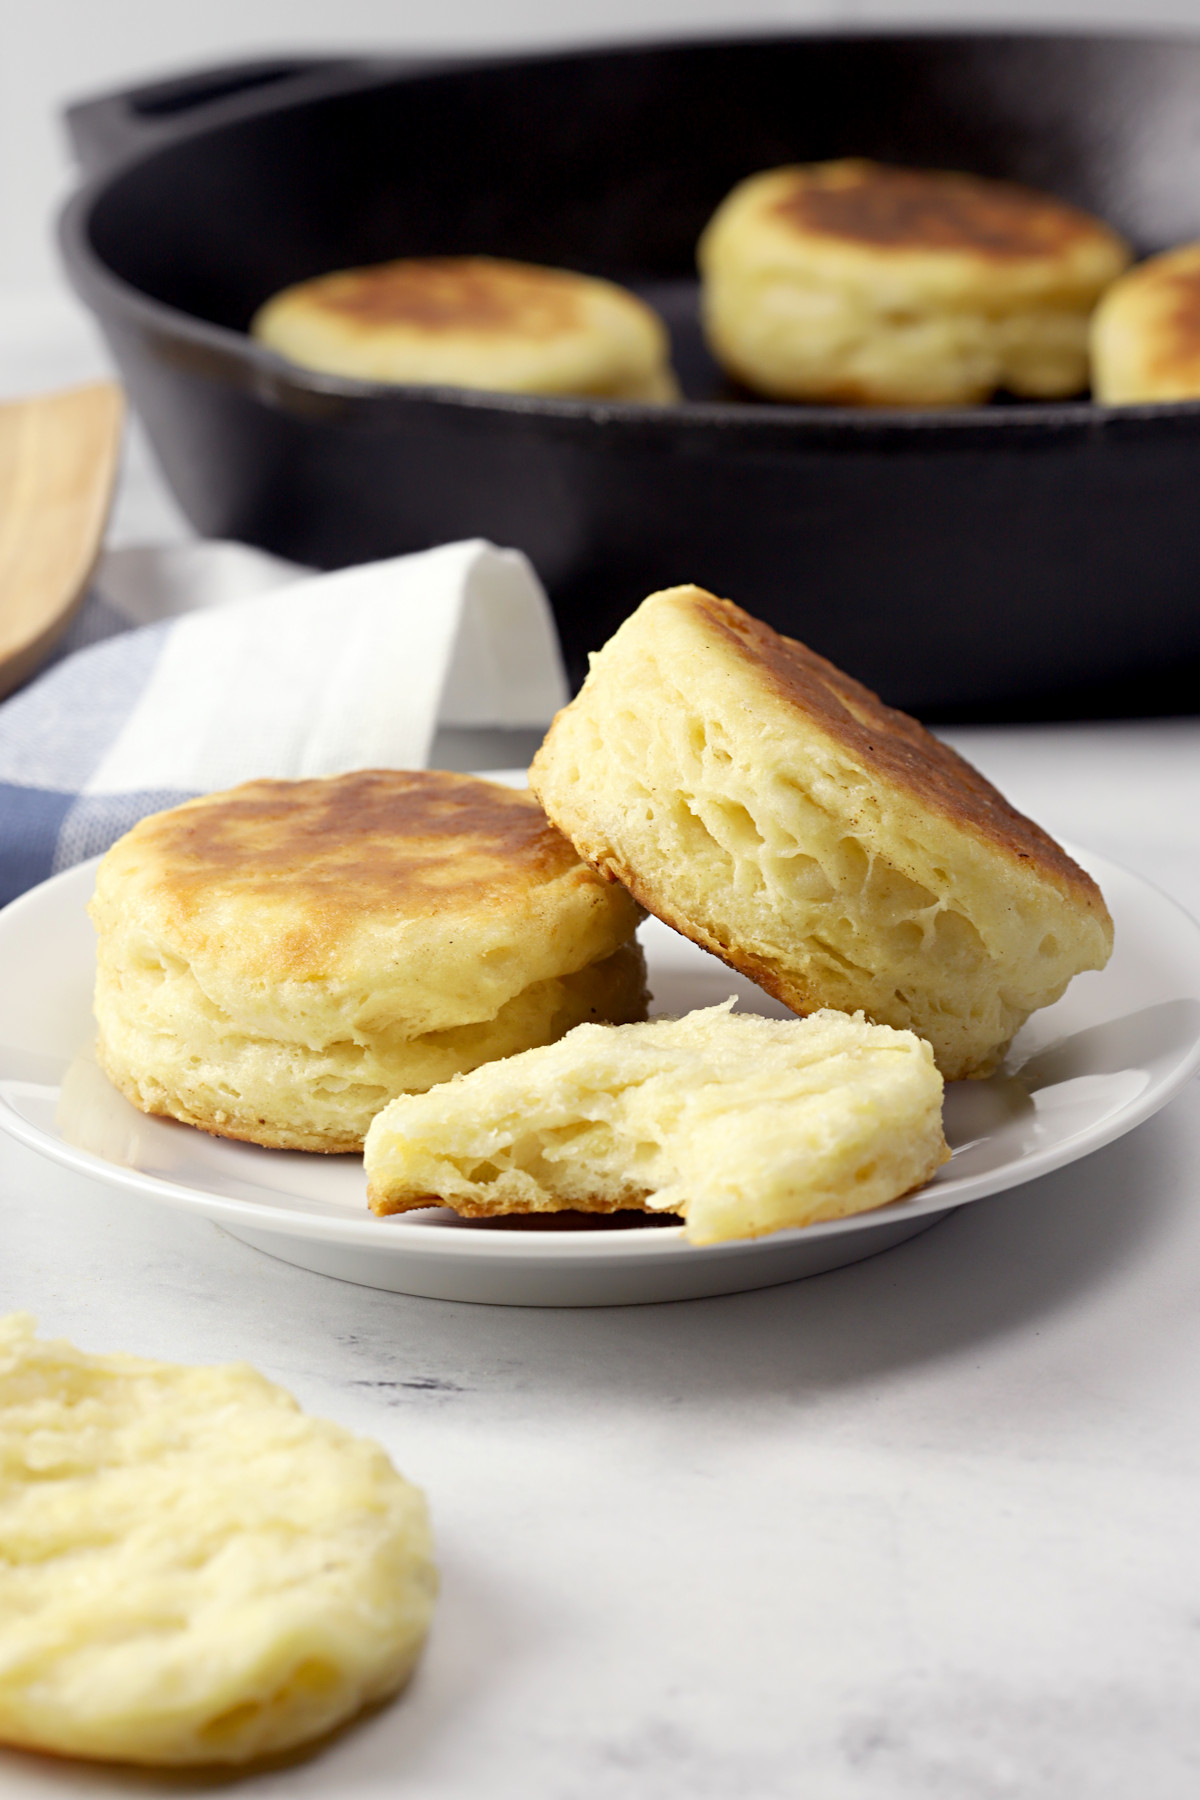 Biscuits on a plate with skillet in the background.